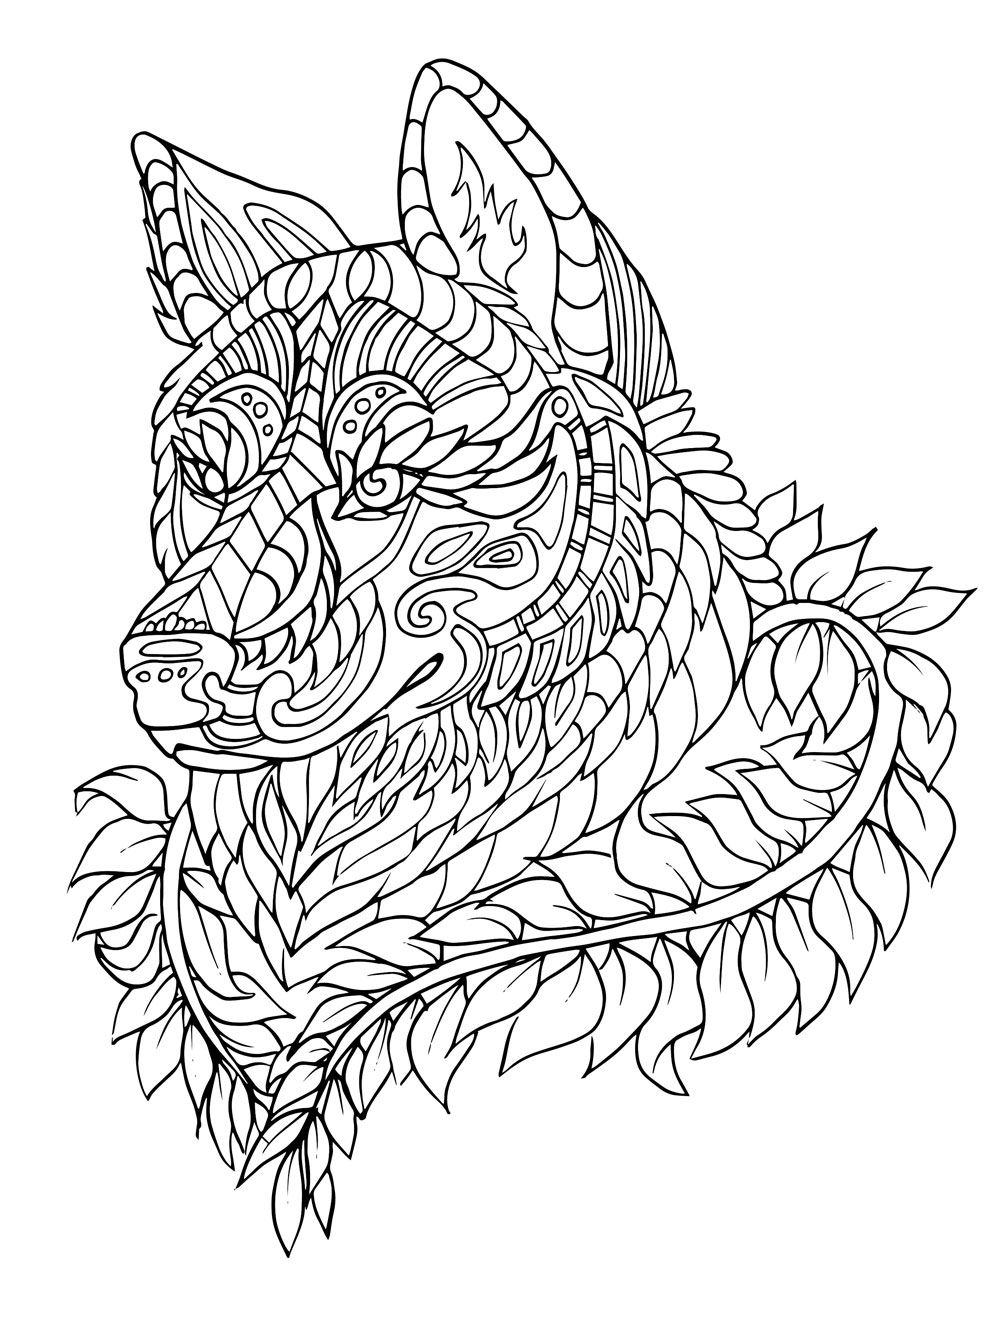 Wolf Mandala Coloring Pages Gallery Animal Coloring Pages Horse Coloring Pages Abstract Coloring Pages